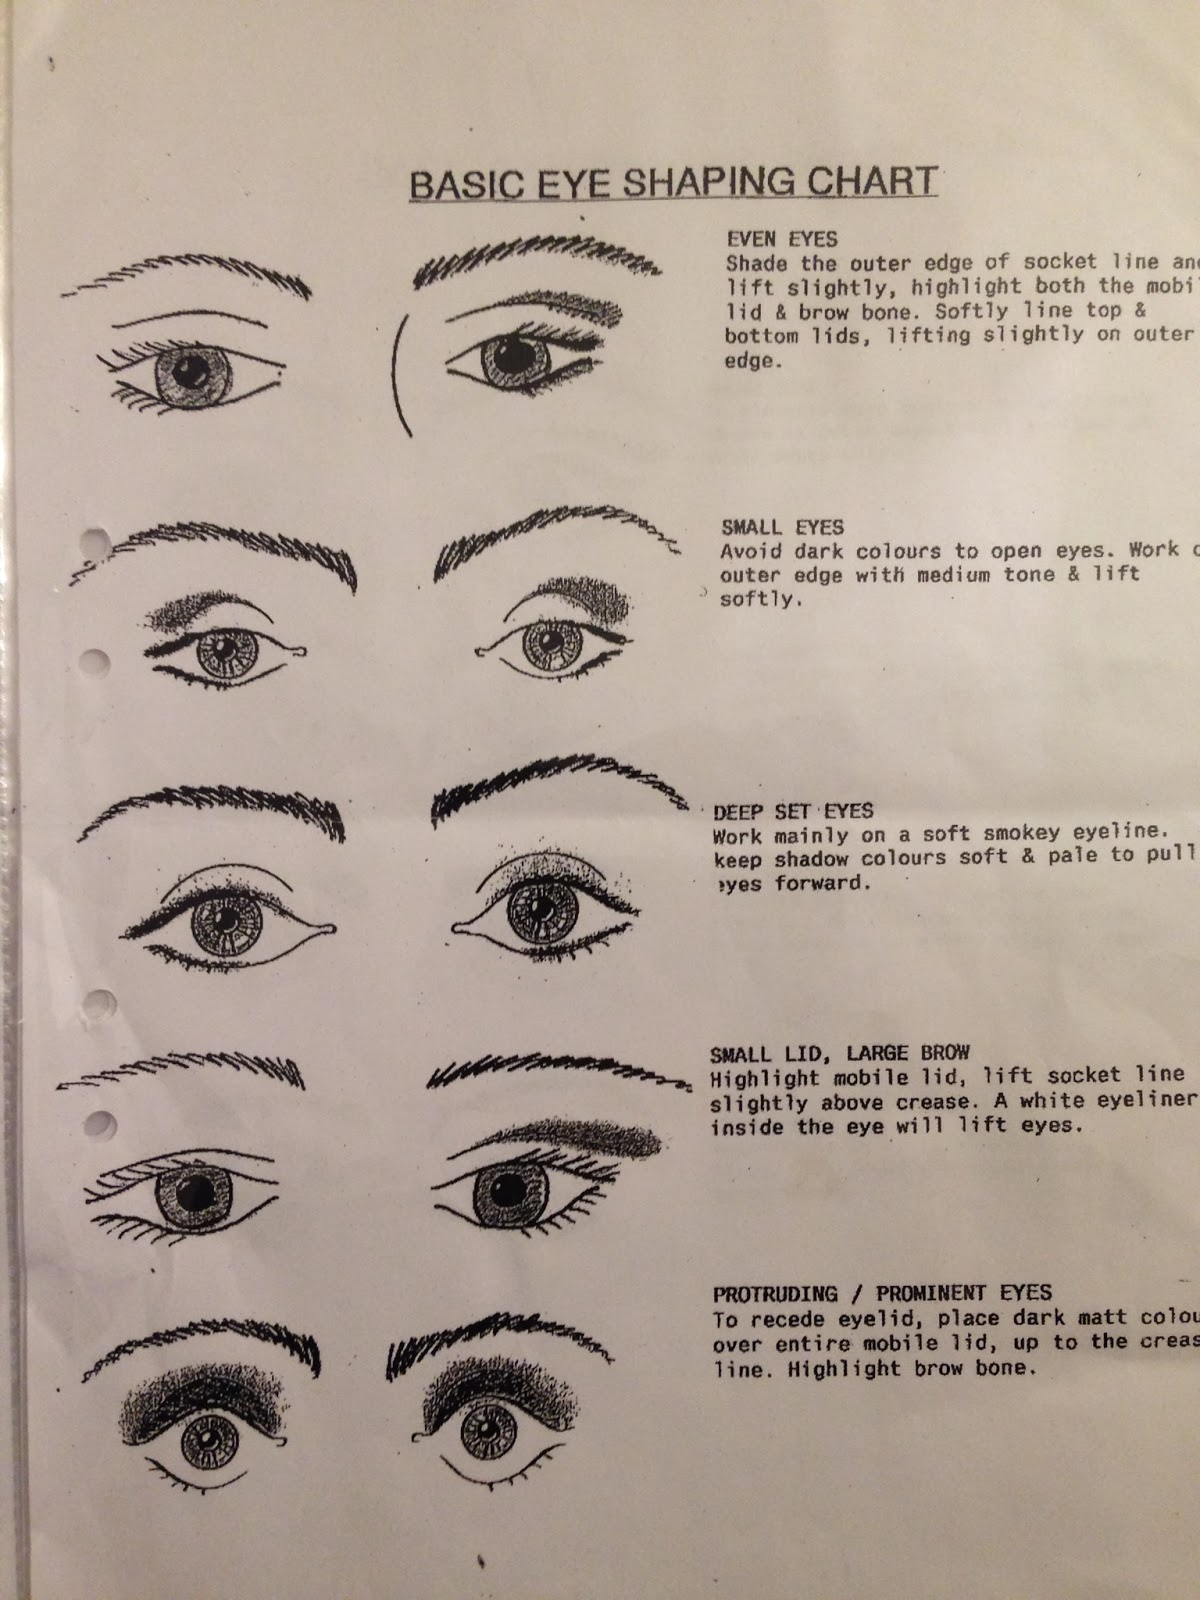 How To Apply Eyeshadow Diagram 1972 Chevelle Wiring Parts Of The Eye For Makeup Saubhaya